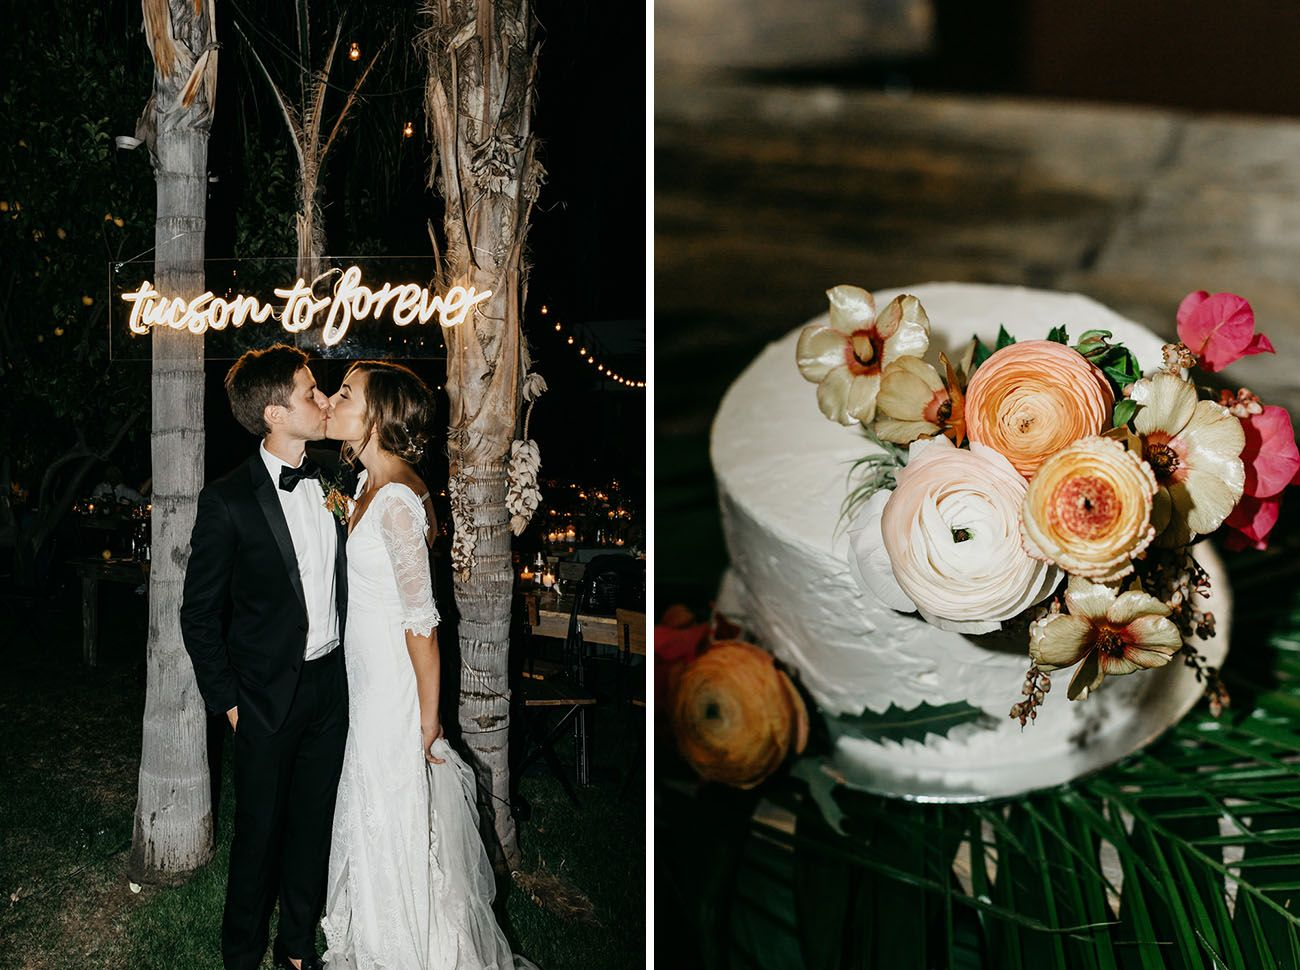 Bougainvillea boho chic an epic wedding in palm springs palm